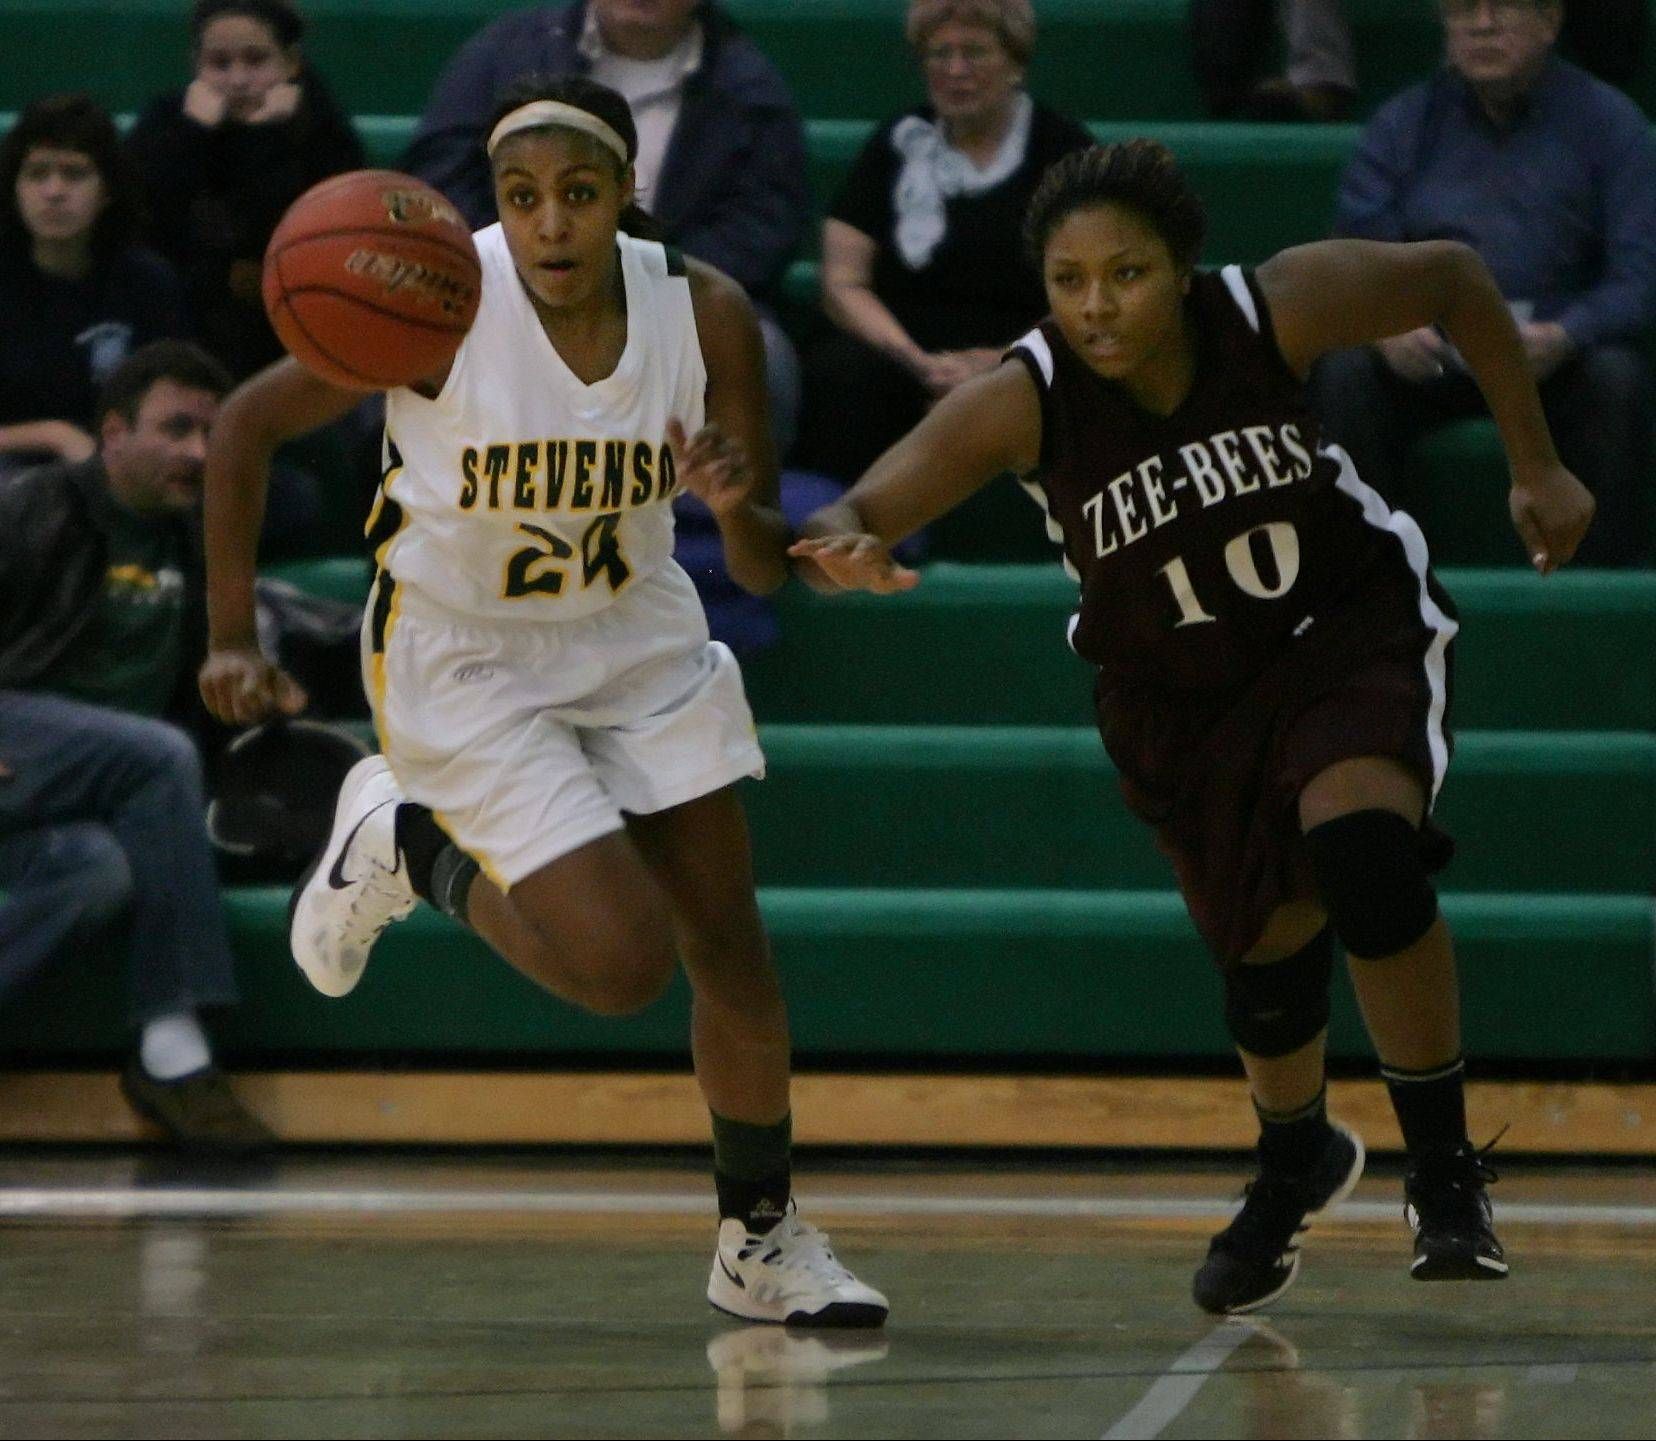 Stevenson forward Taylor Buford steals the ball away from Zion-Benton forward Keonnia Gentry in the first quarter at Stevenson on Thursday.